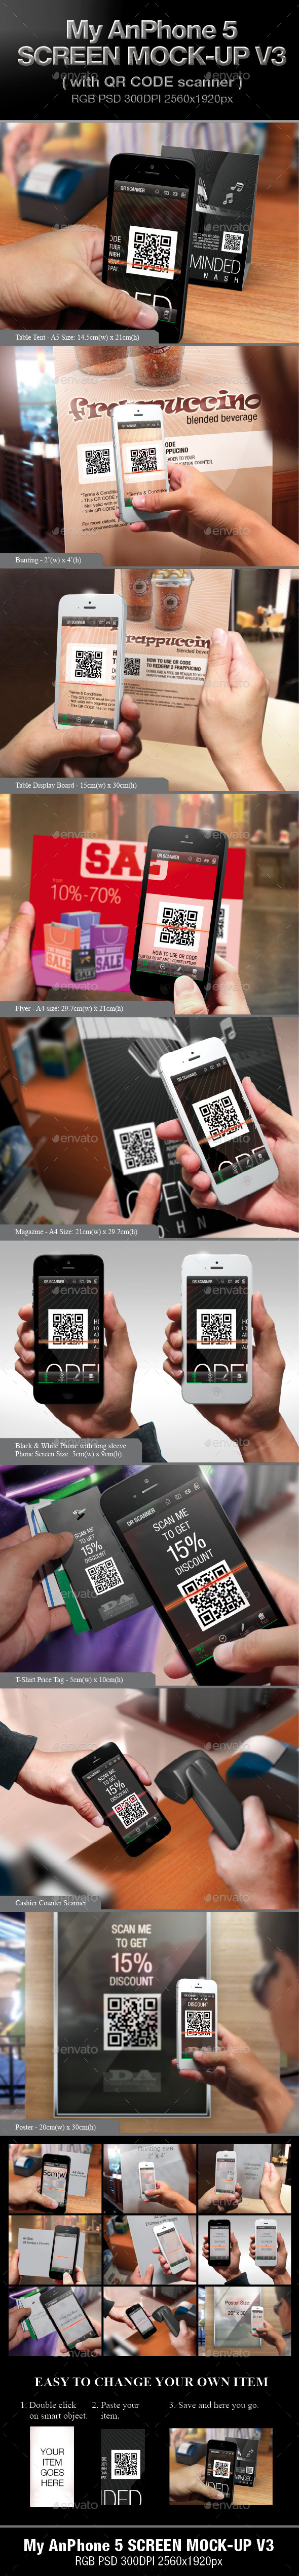 My AnPhone 5 Screen Mock-up V3 - Mobile Displays